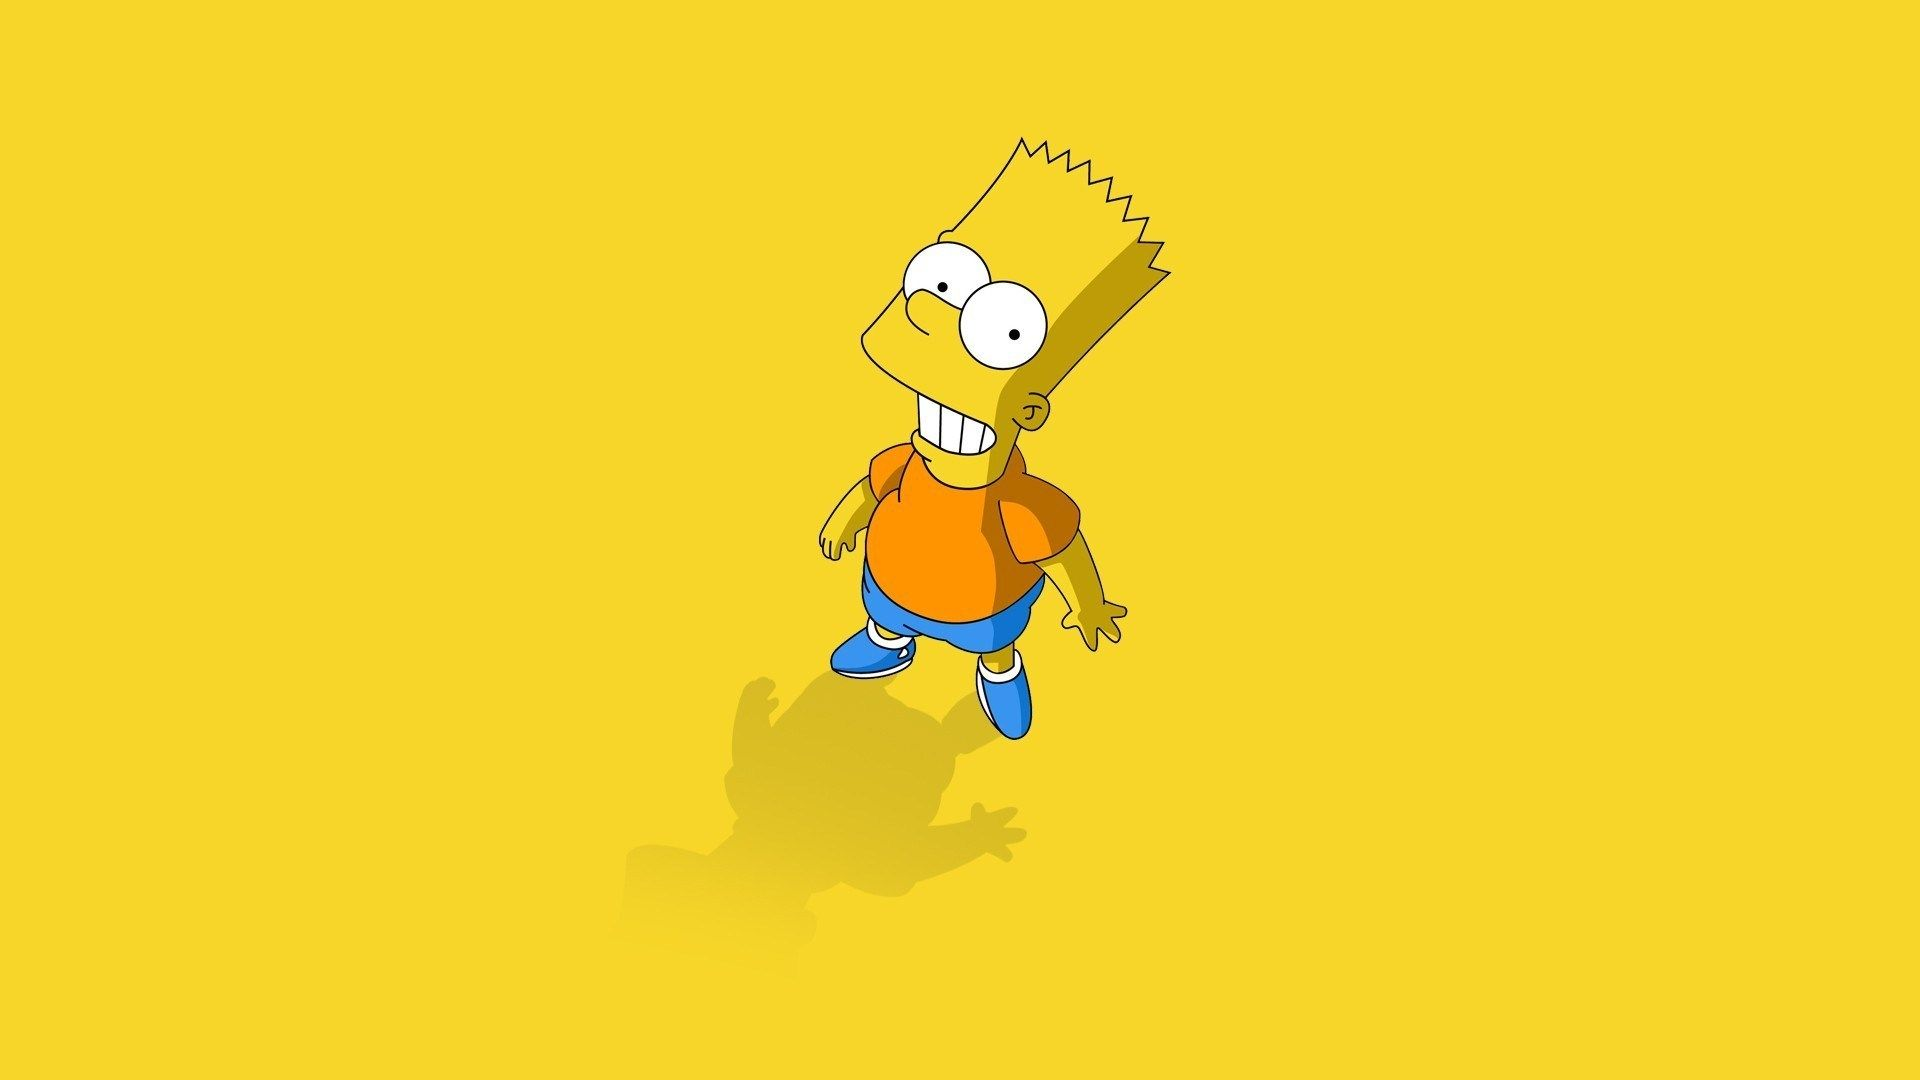 The Simpsons Hd Wallpapers Backgrounds Wallpaper 1920 1080 Simpsons Wallpaper Adorable Wallpapers Kartun Seni Instalasi Seni